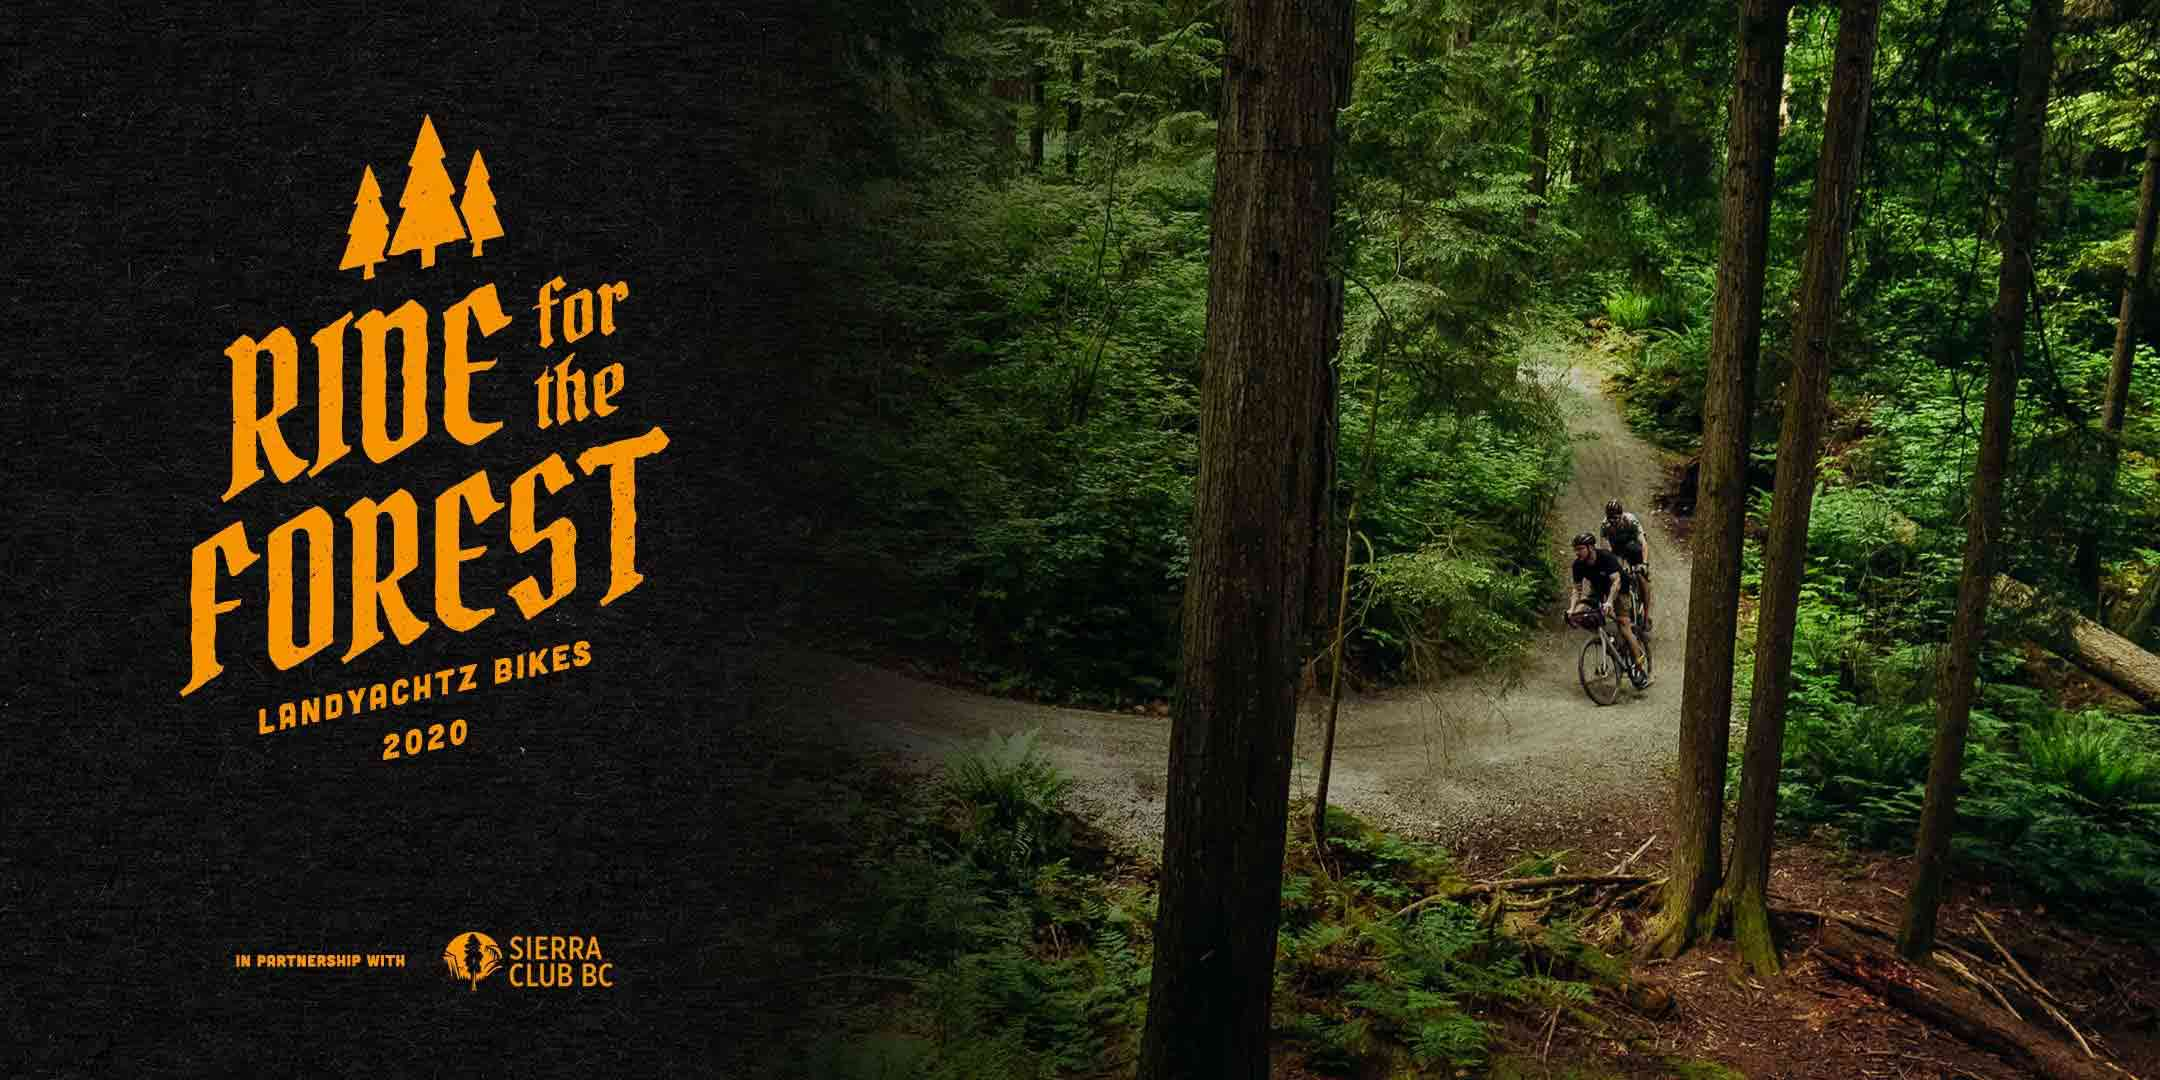 landyachtz-bikes-ride-for-the-forest-2020-banner